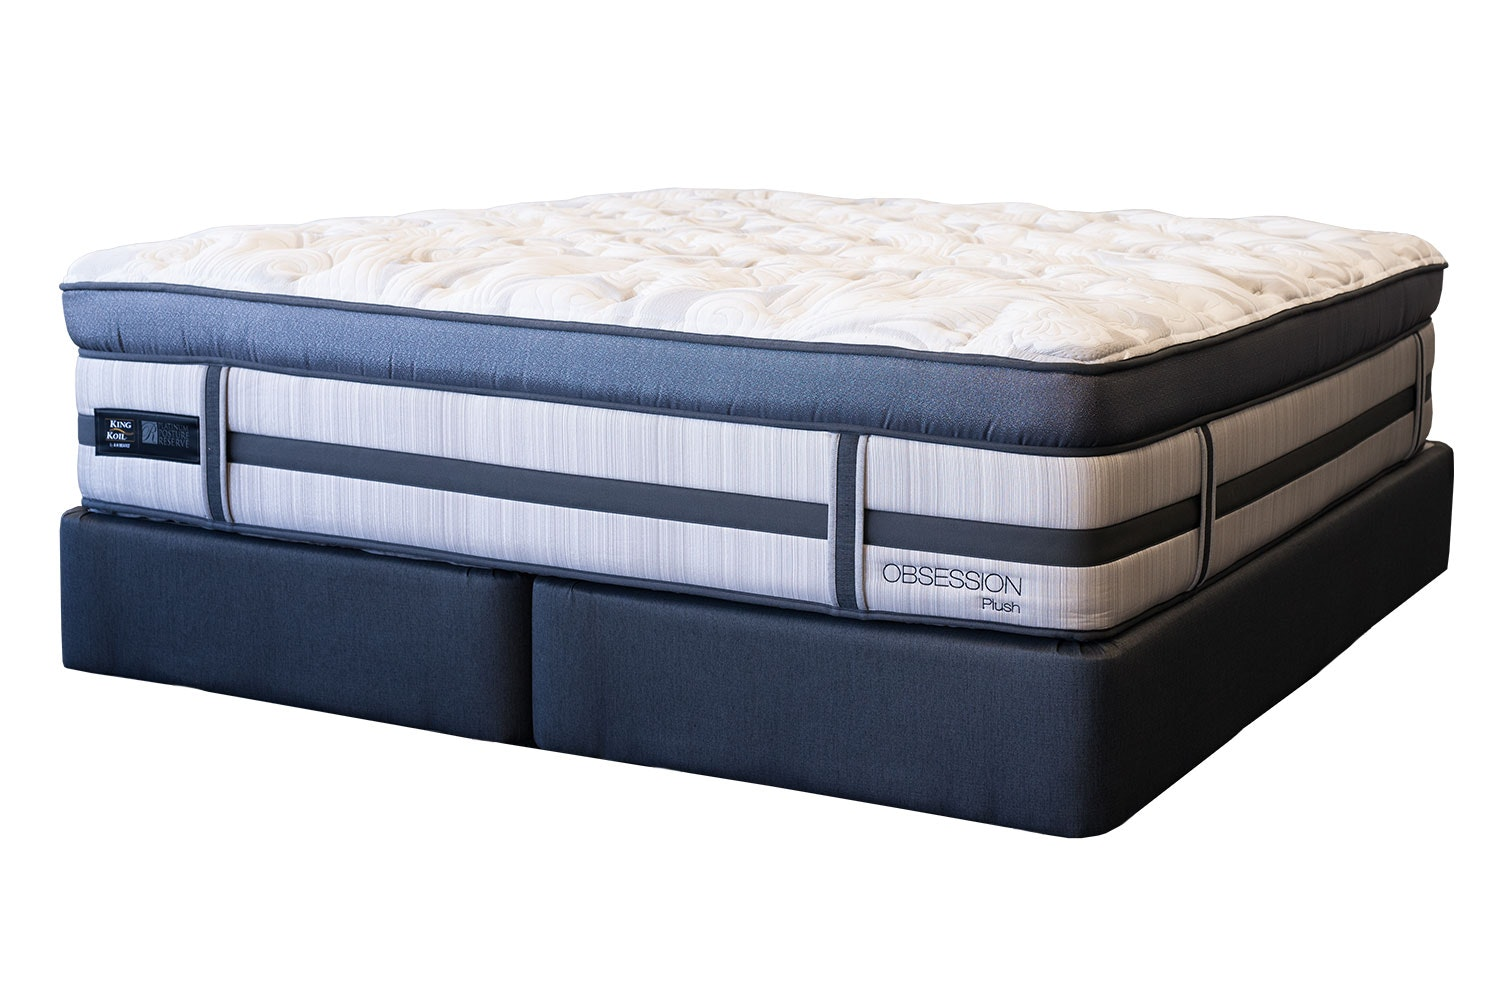 Obsession Plush Double Bed by King Koil